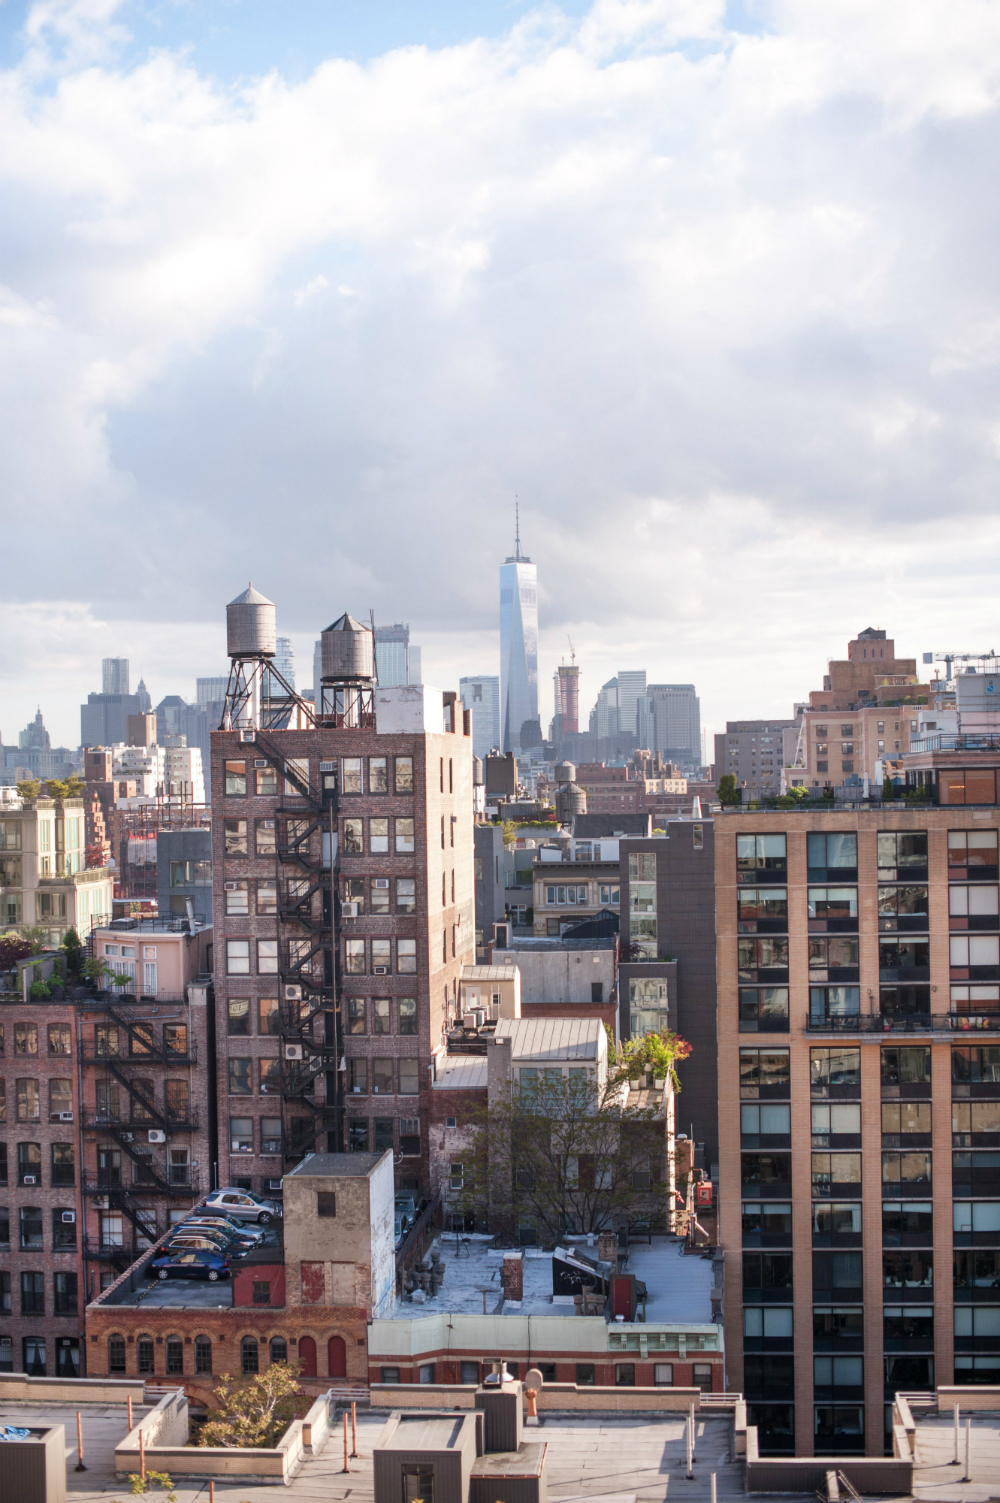 A Rooftop New York Cit...